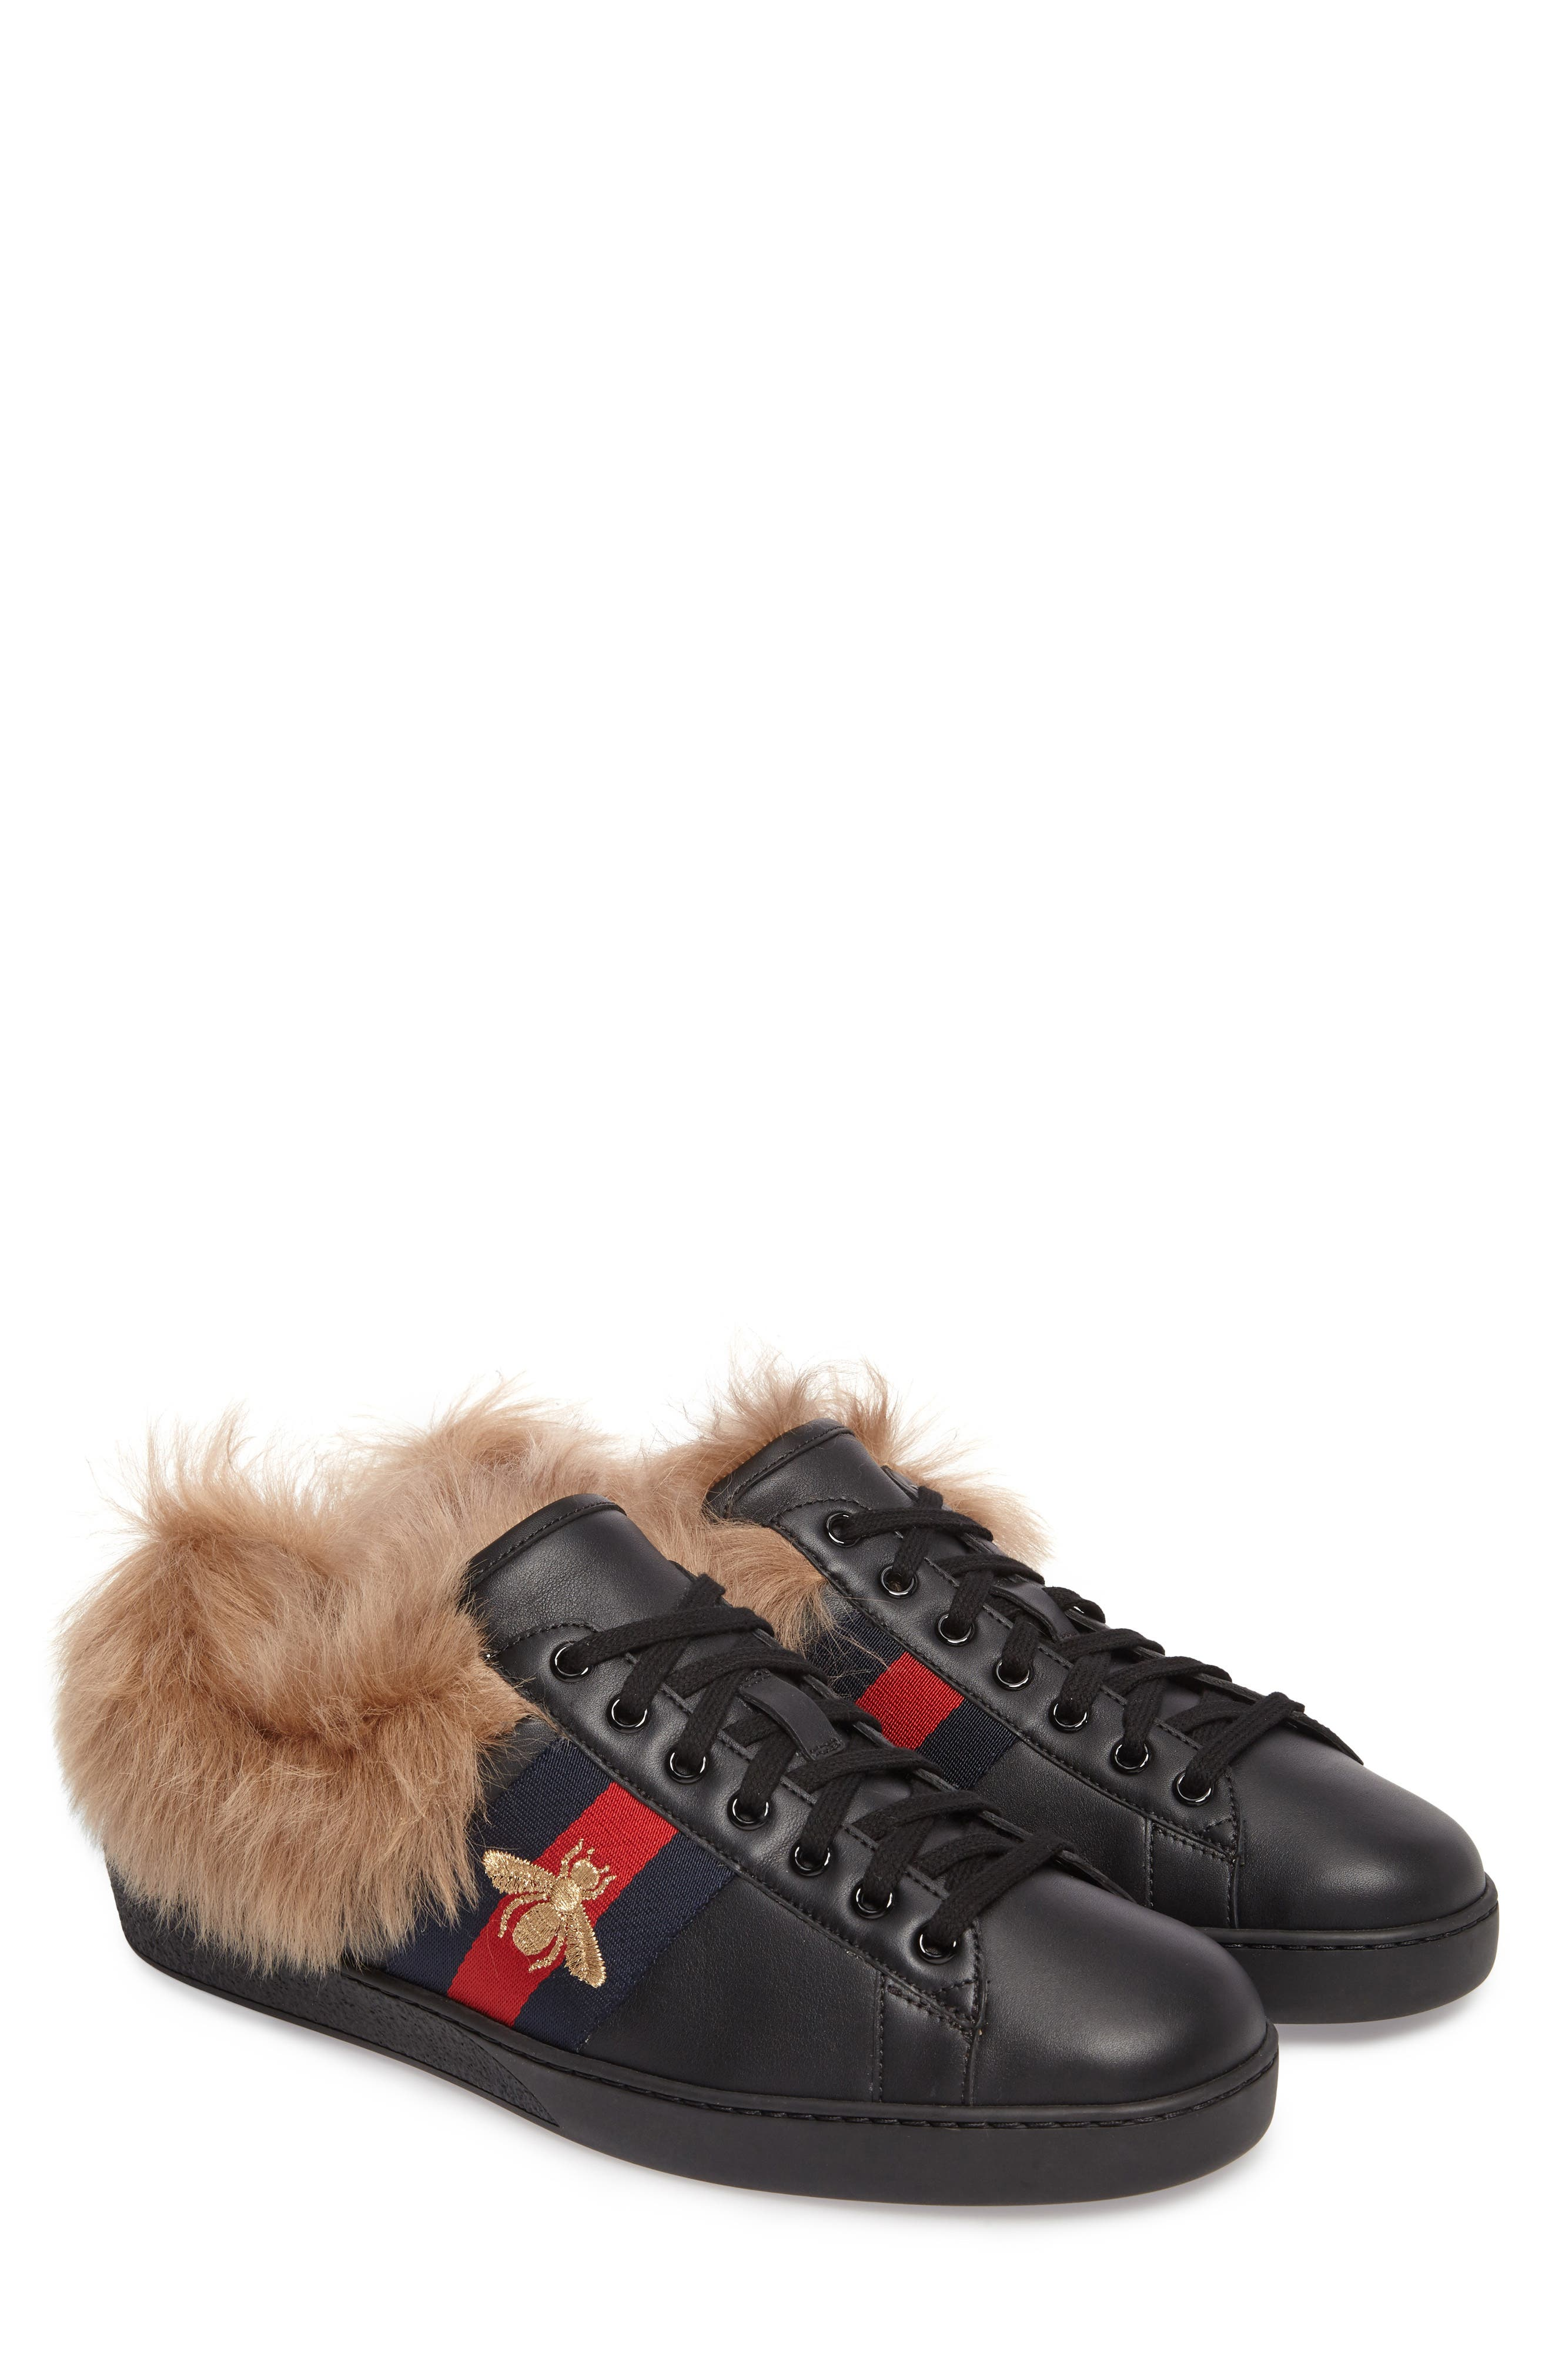 Alternate Image 1 Selected - Gucci New Ace Genuine Shearling Bee Sneaker (Men)